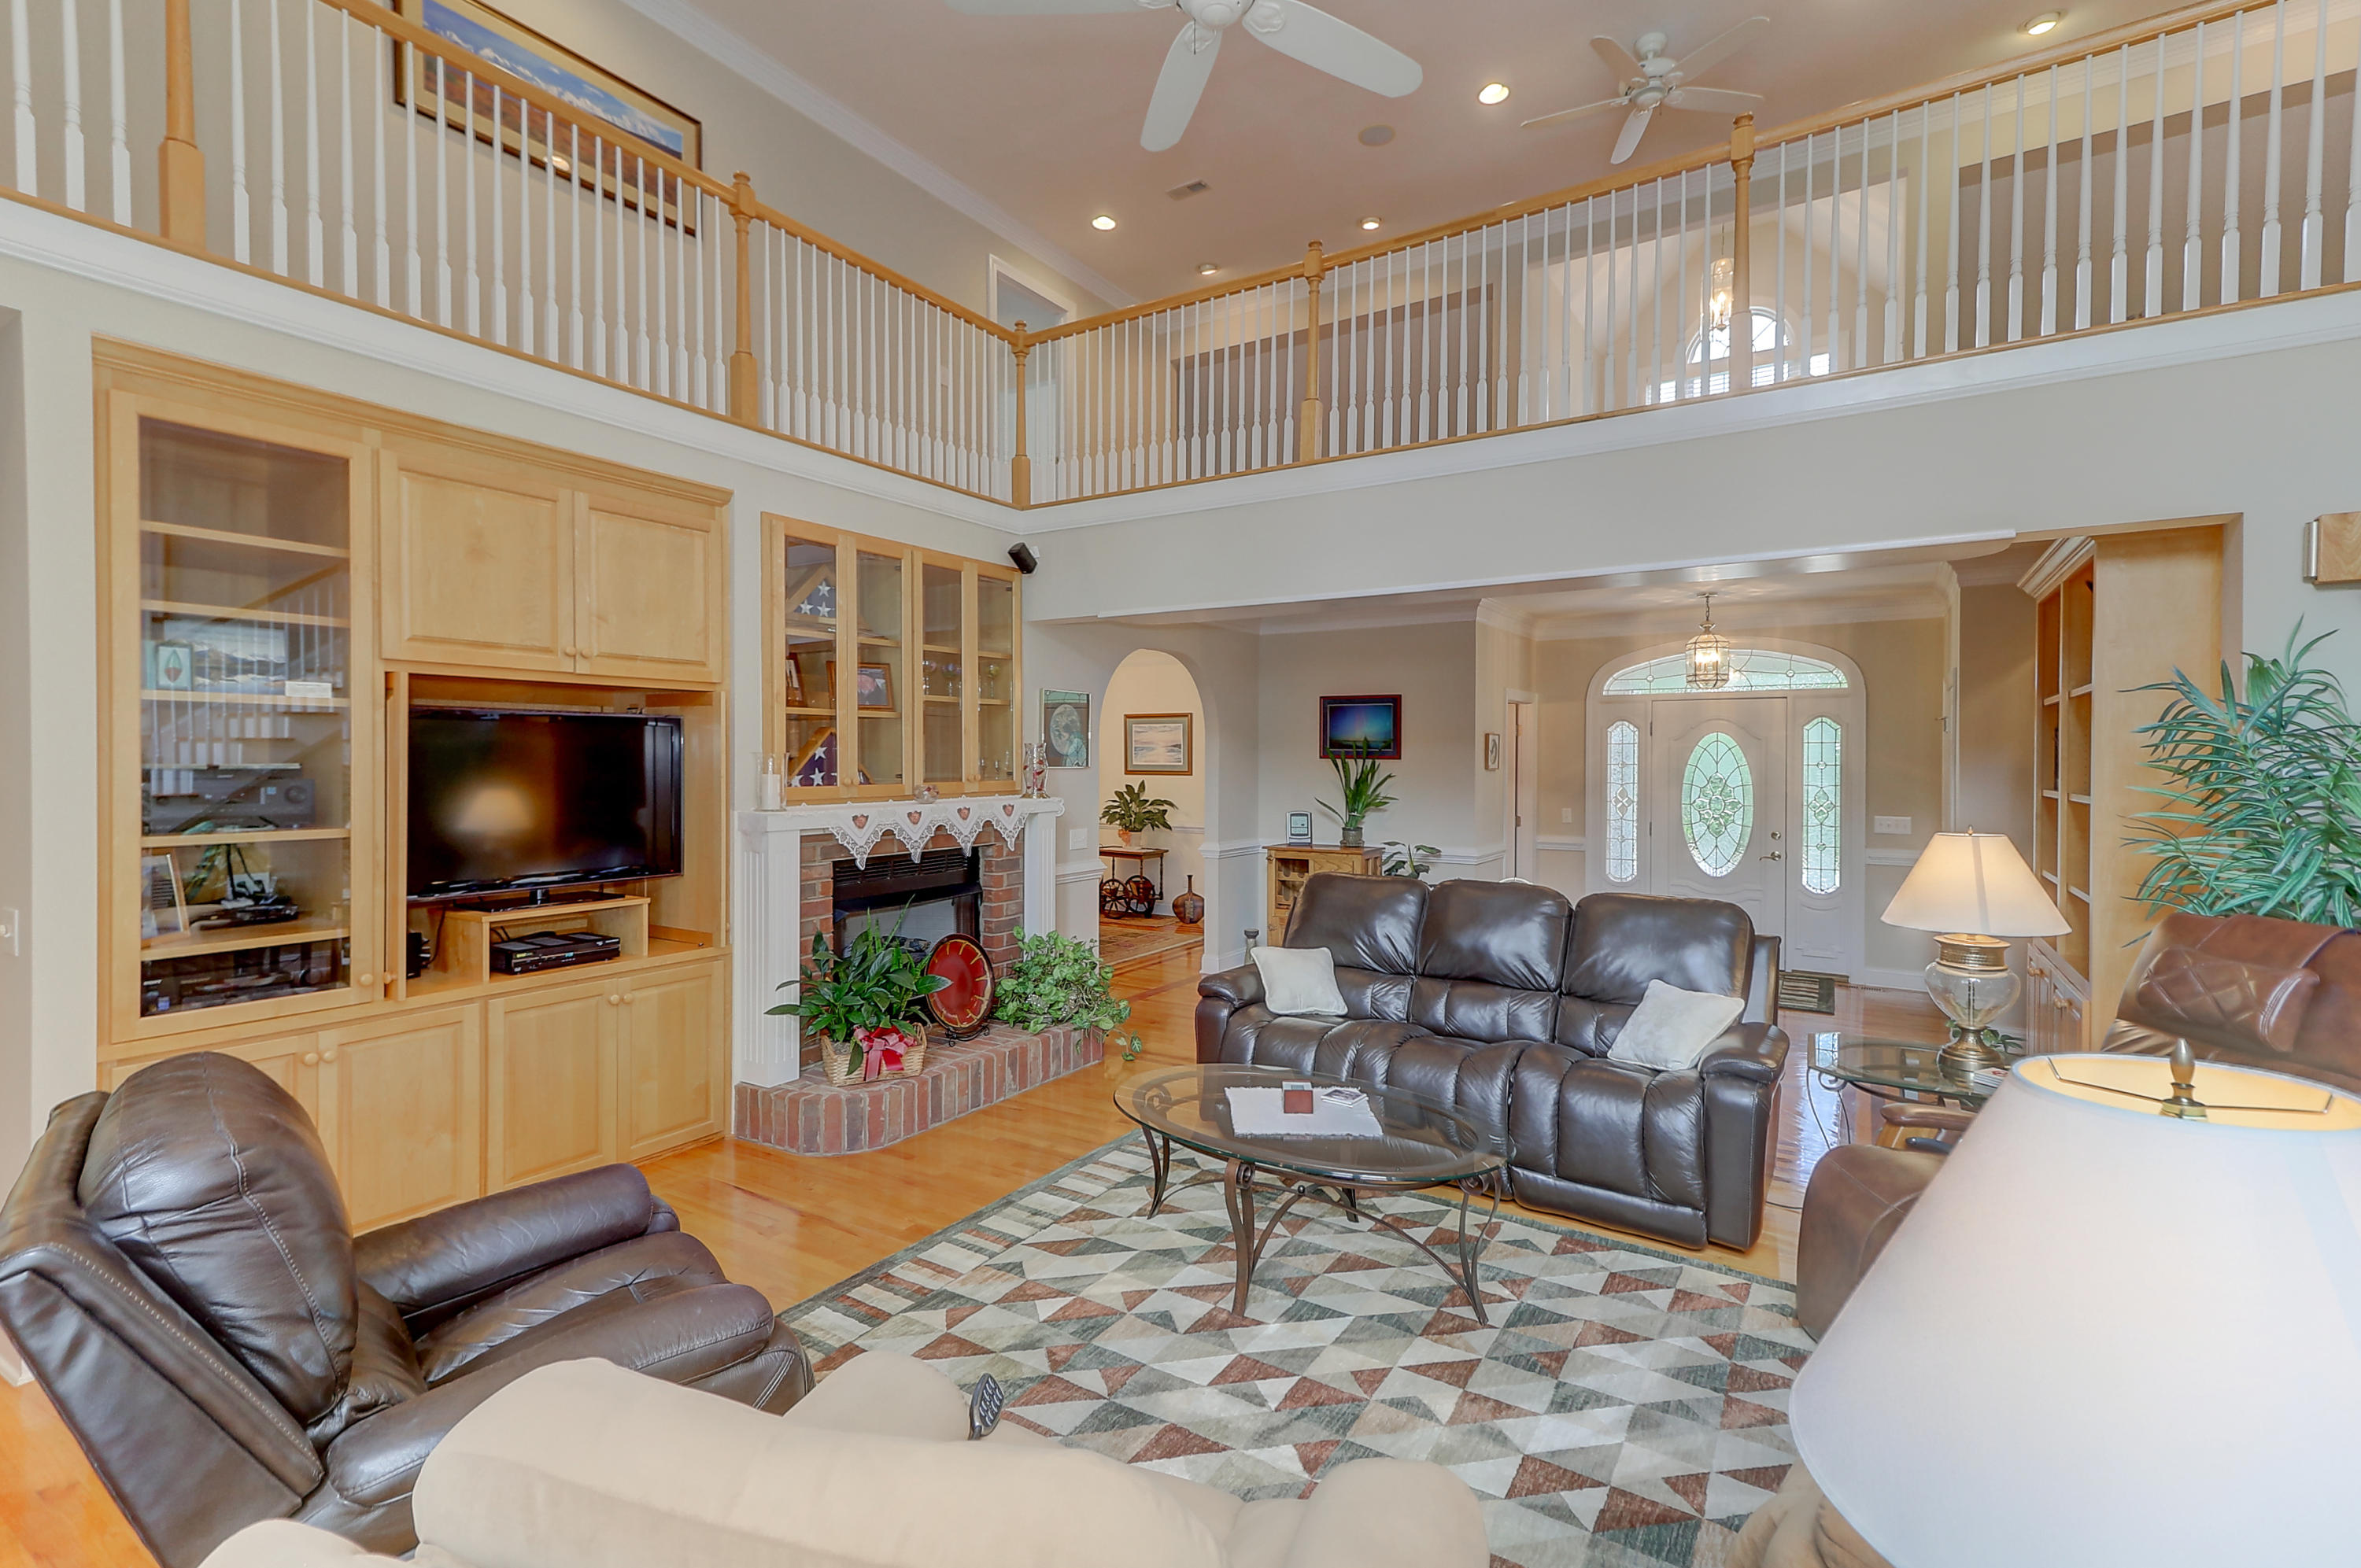 Coosaw Creek Country Club Homes For Sale - 8700 Fairway Woods, North Charleston, SC - 70